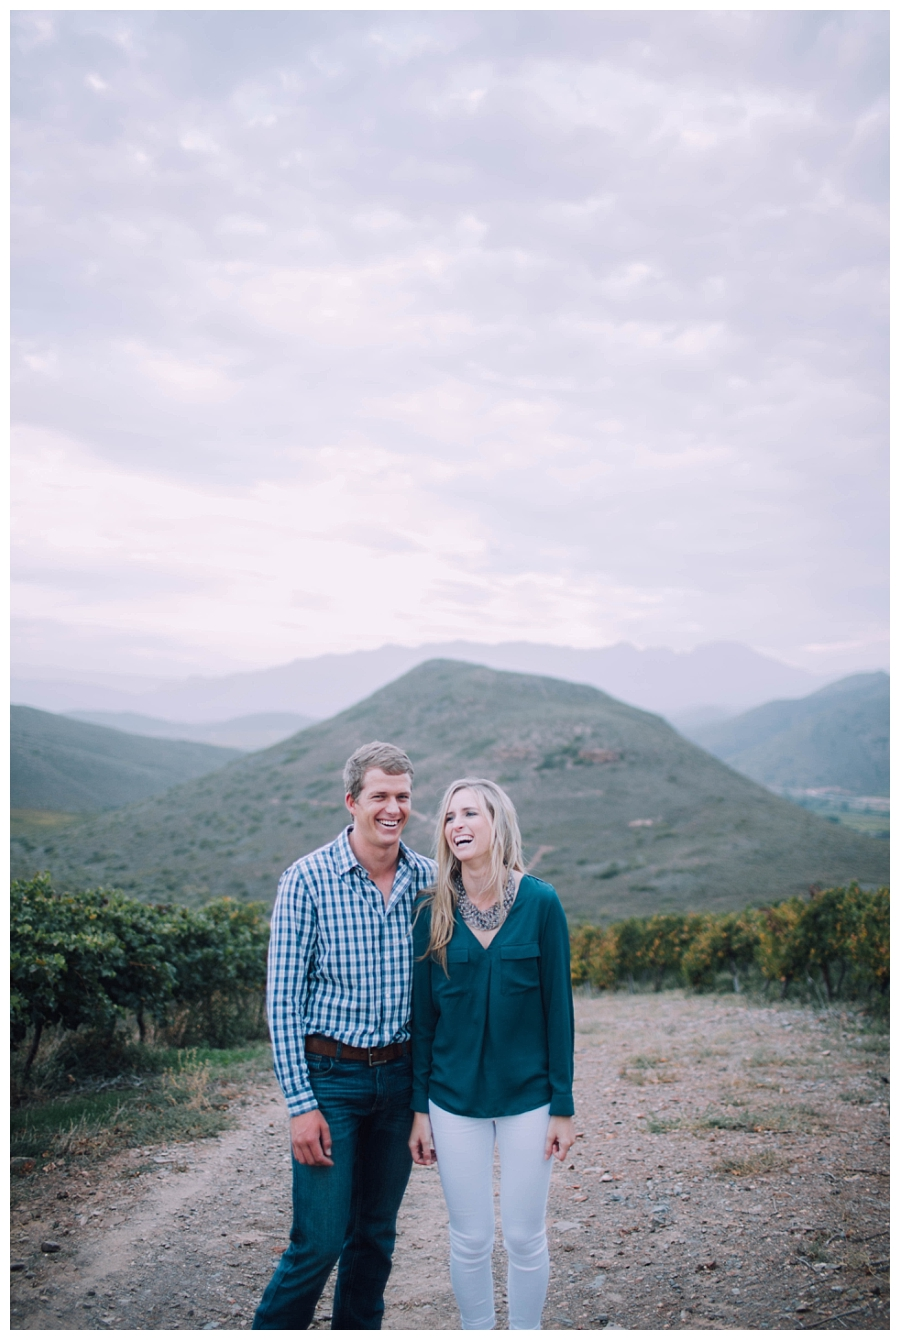 Ronel Kruger Cape Town Wedding and Lifestyle Photographer_4047.jpg